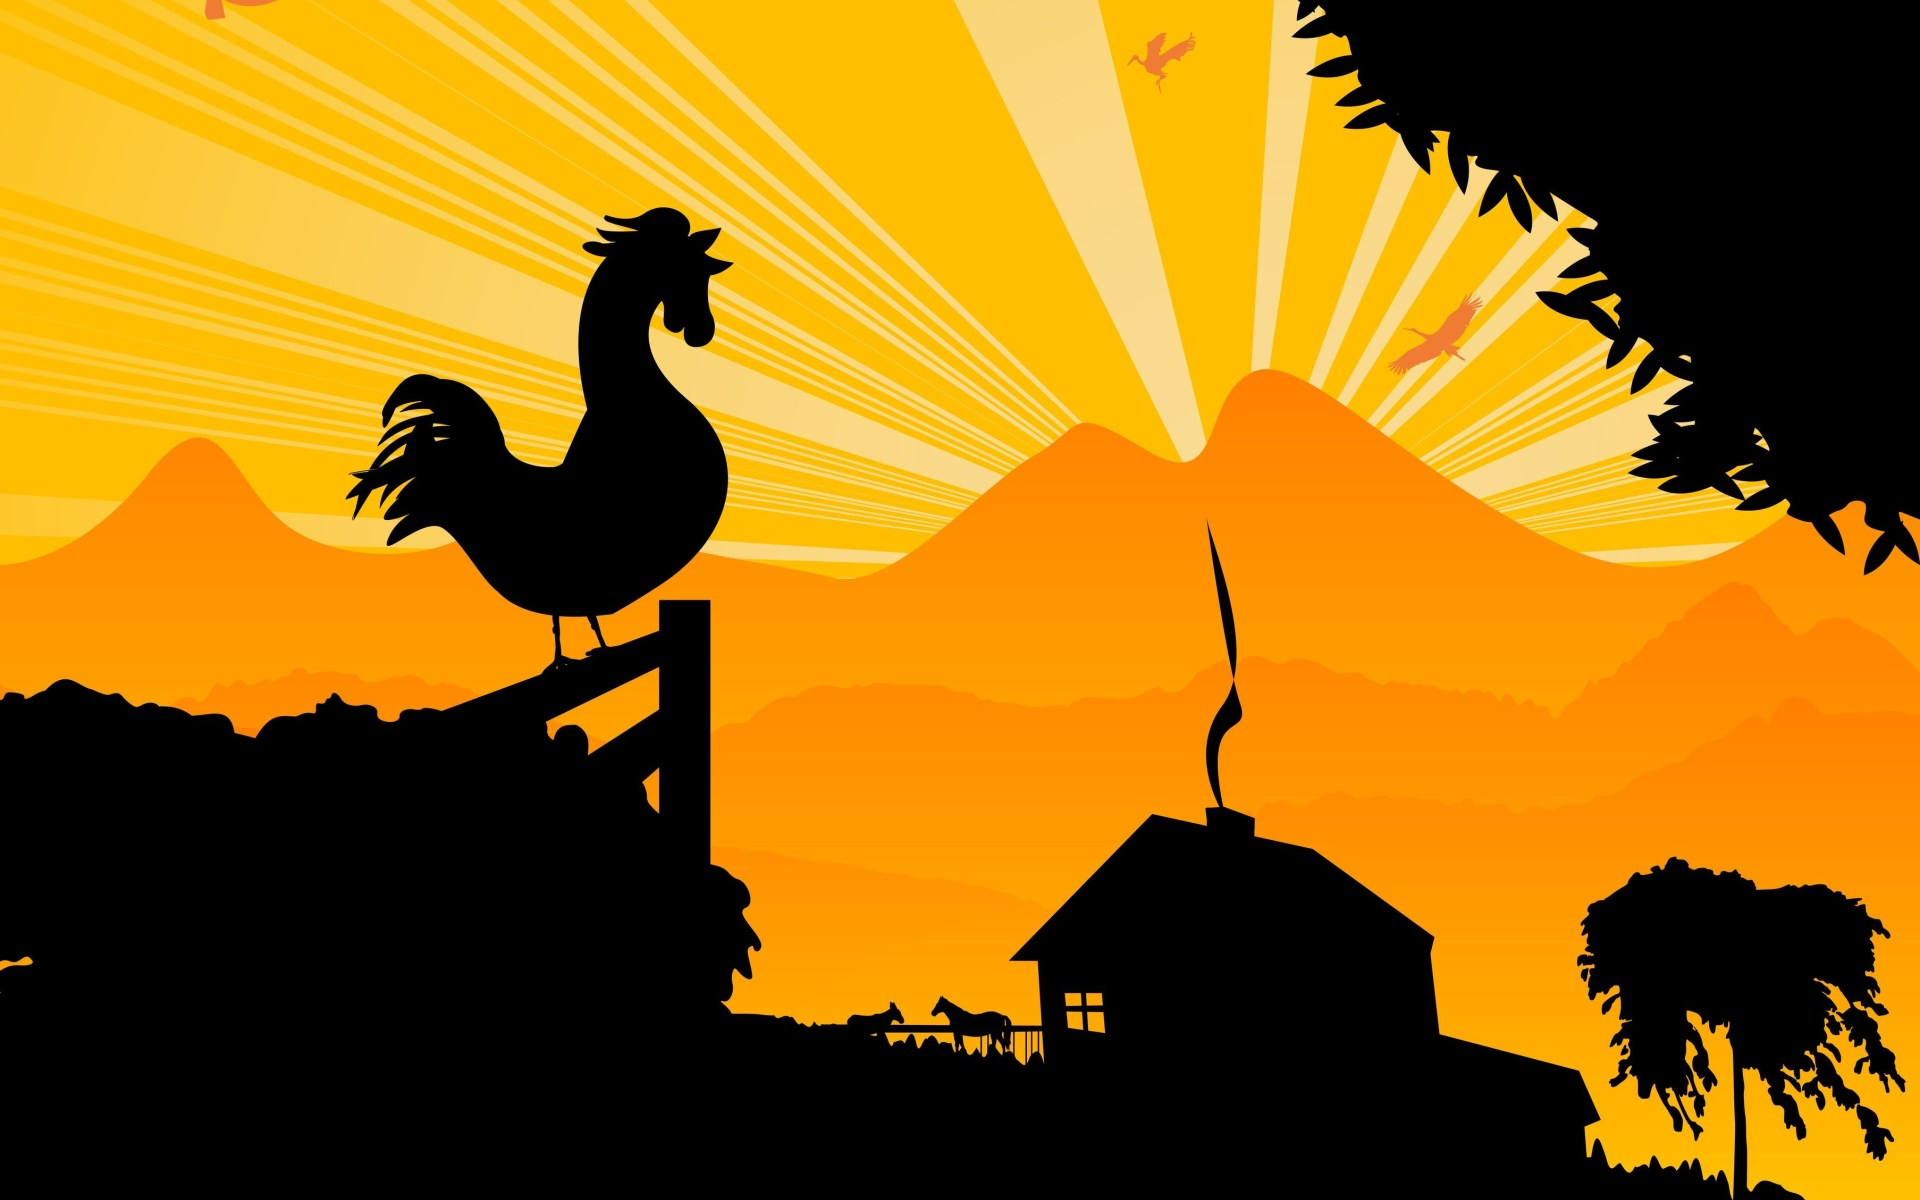 Morning clipart early morning. Rooster on farm clip